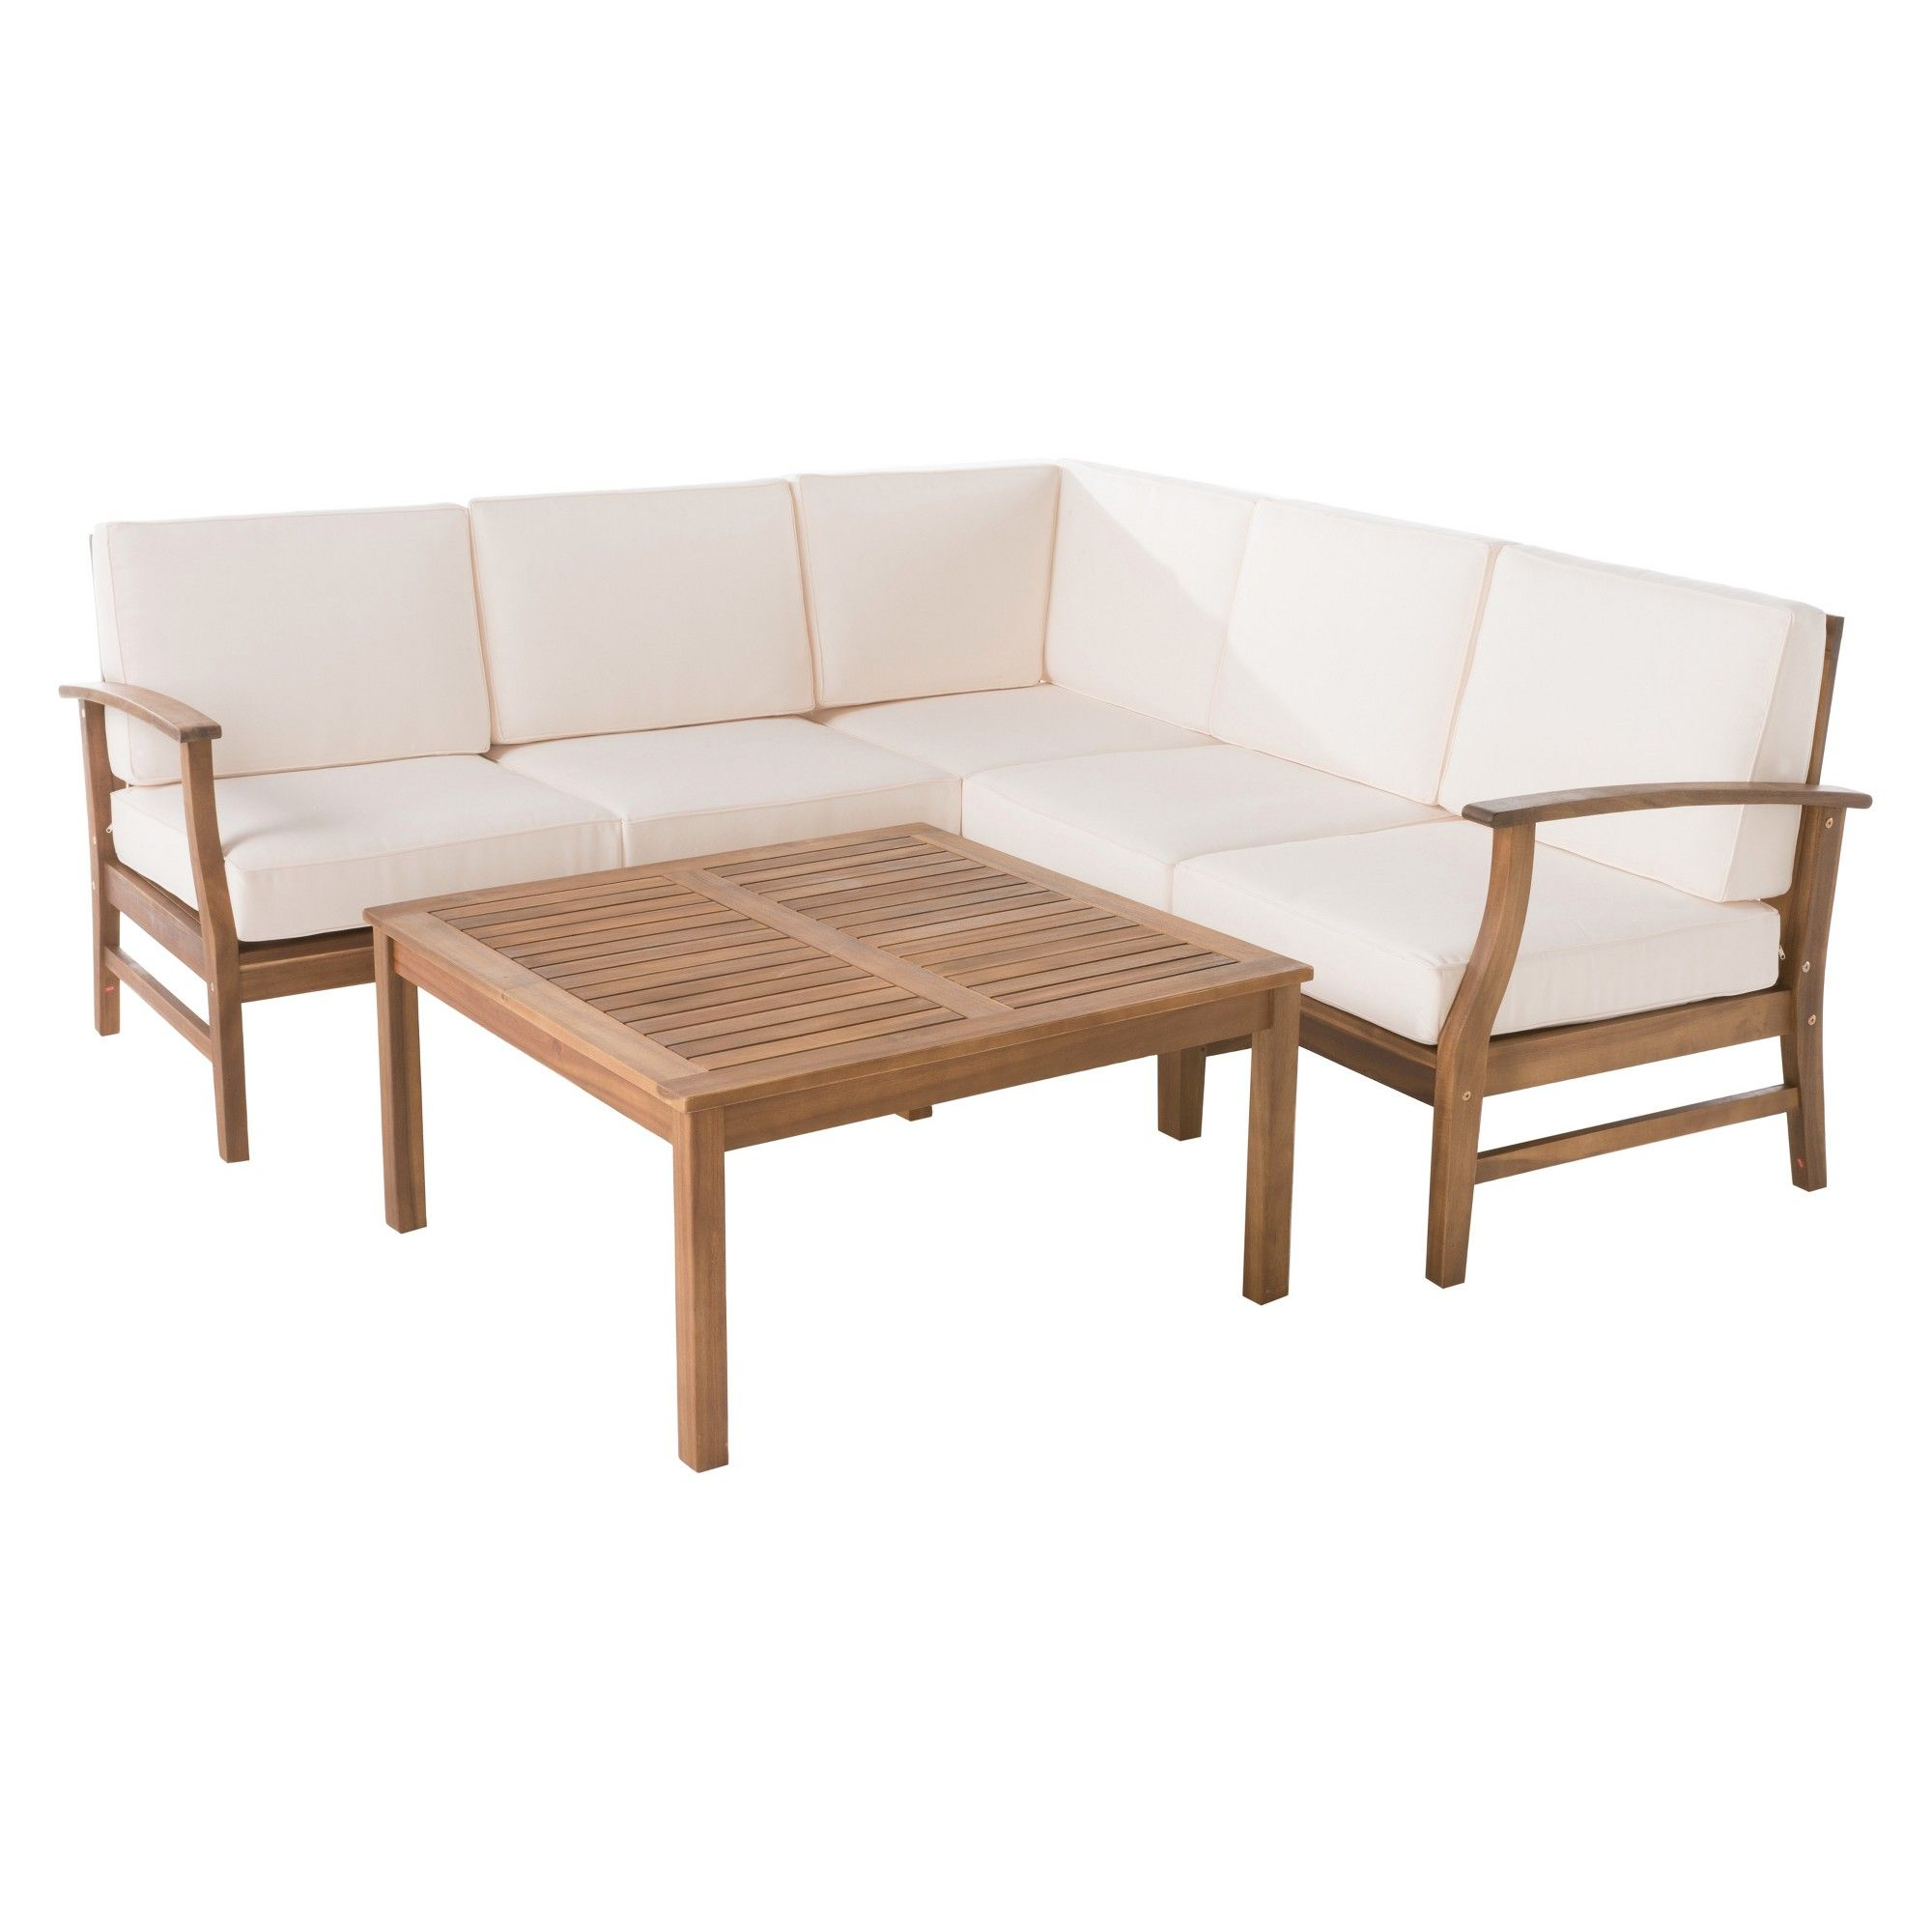 perla 6pc acacia wood chat set with water resistant cushions cream rh pinterest com